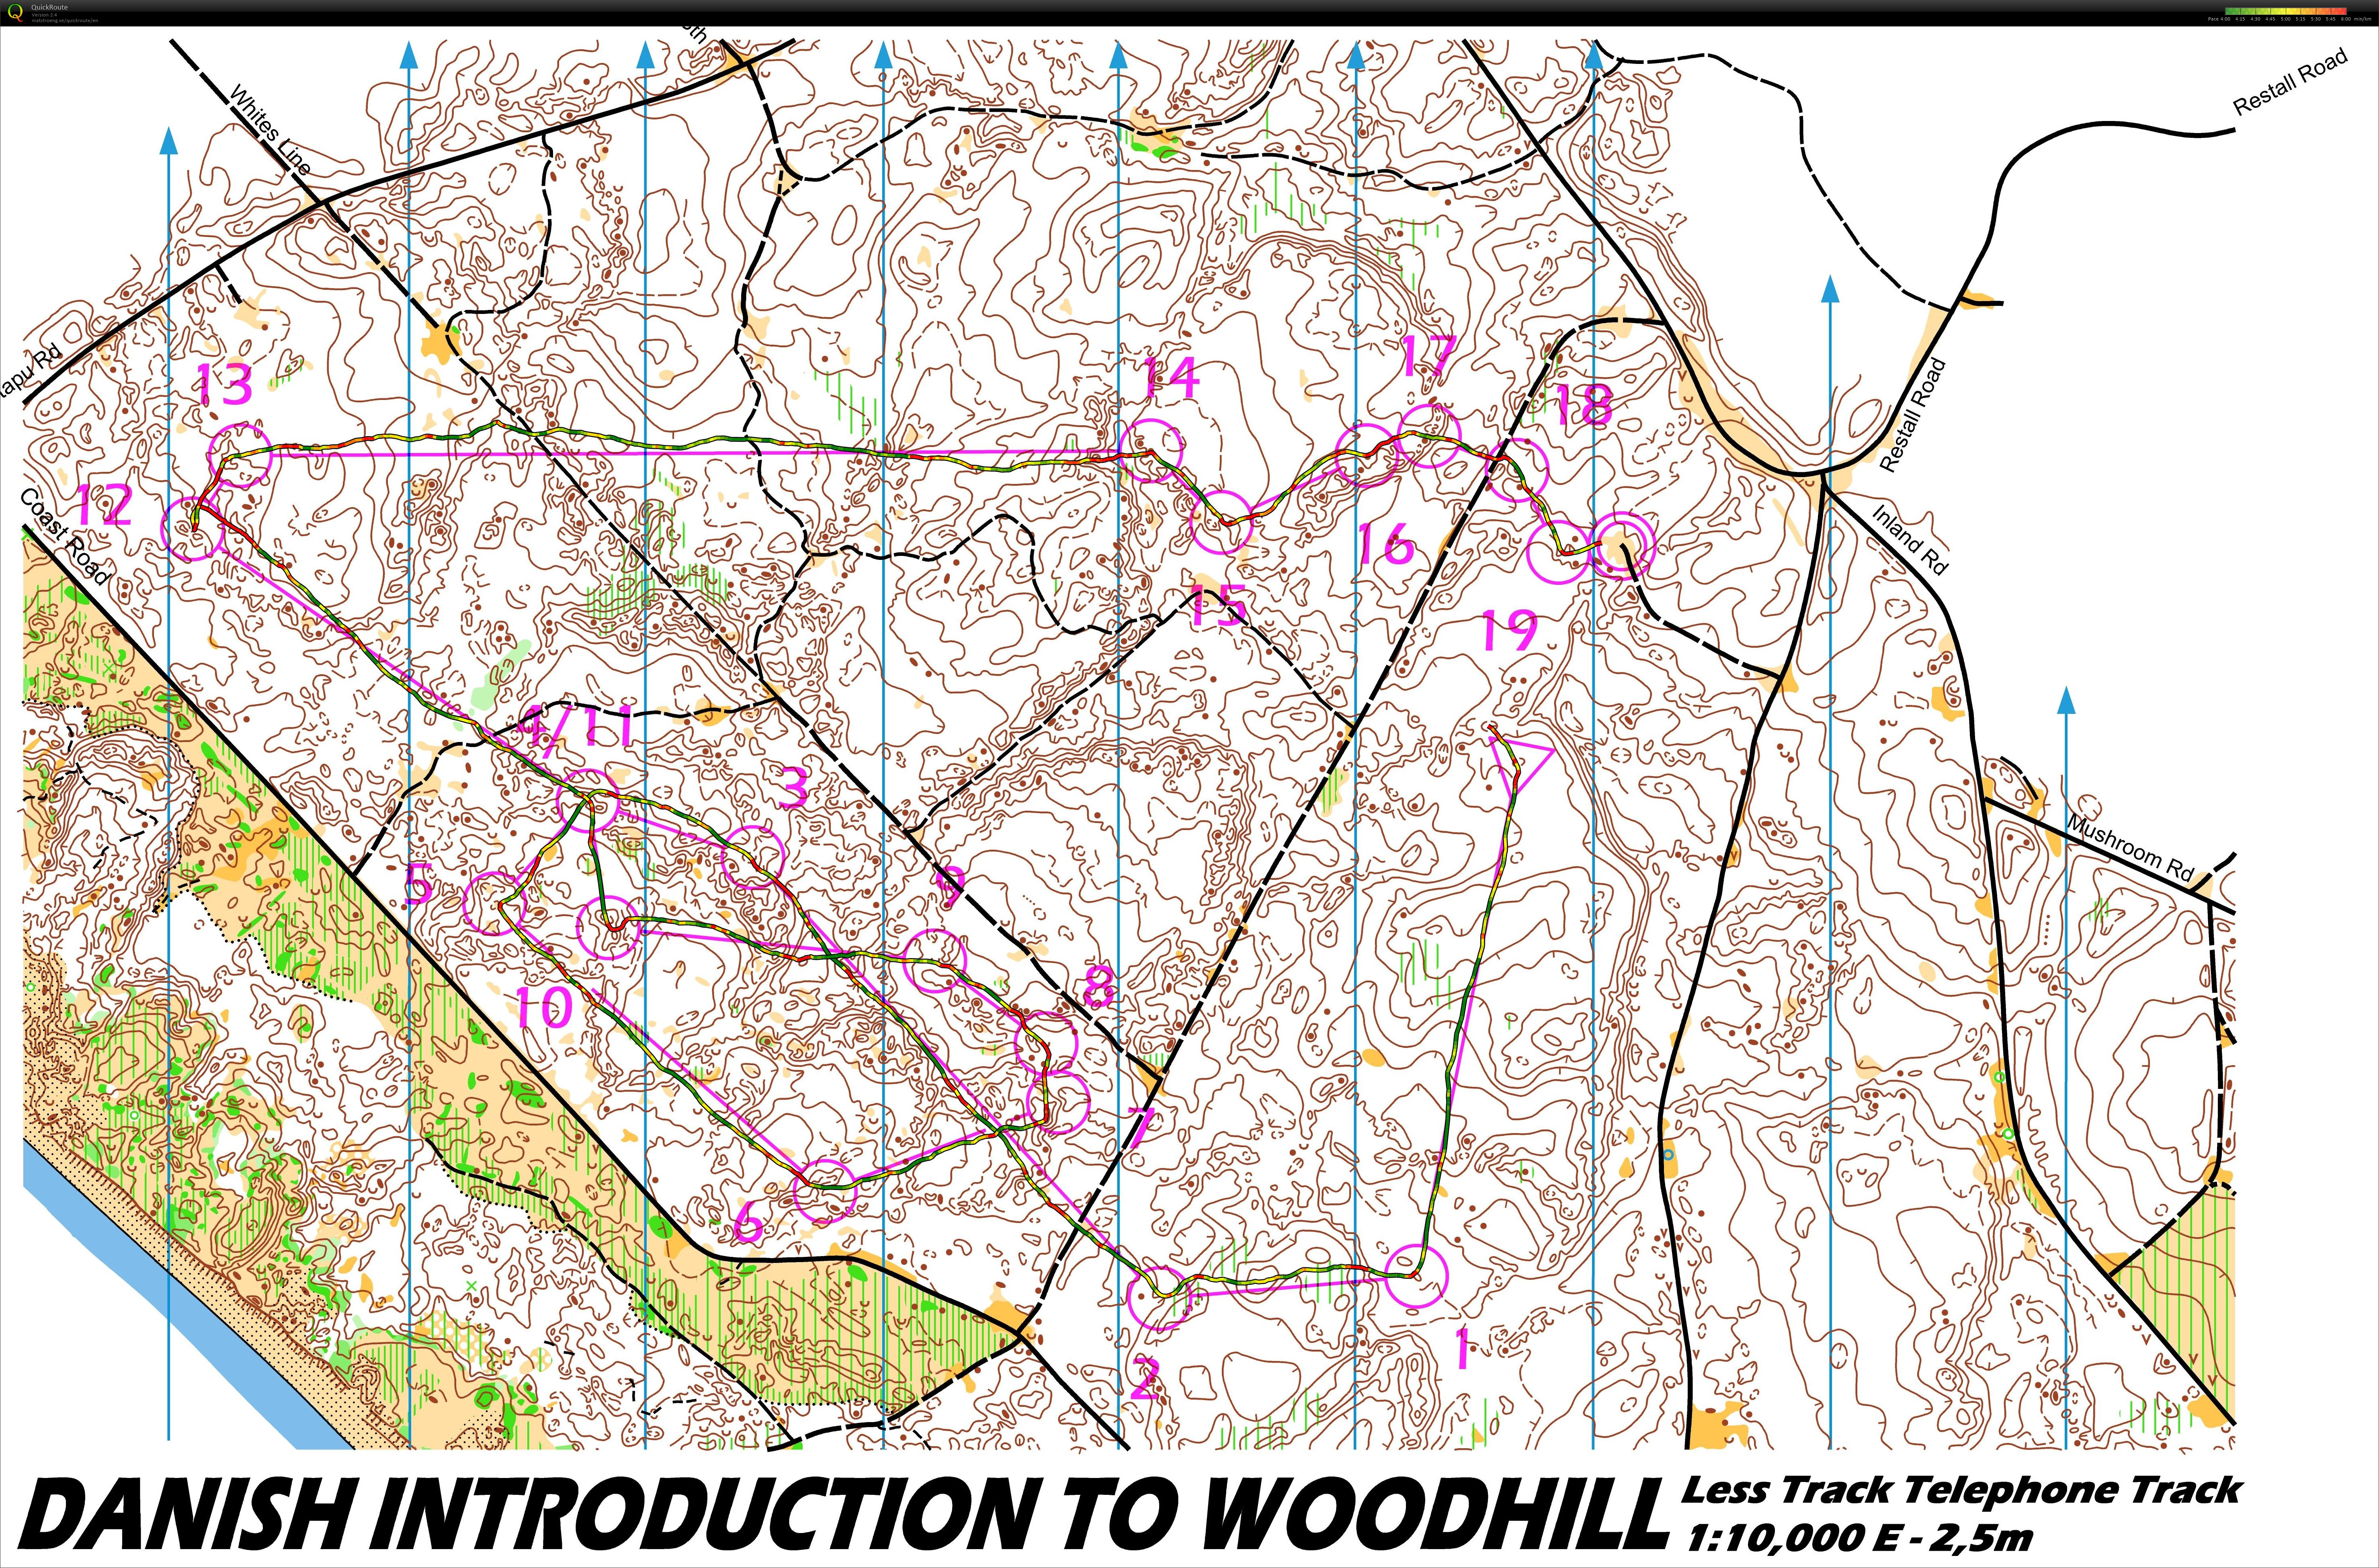 Danish Introduction to Woodhill (17/01/2015)